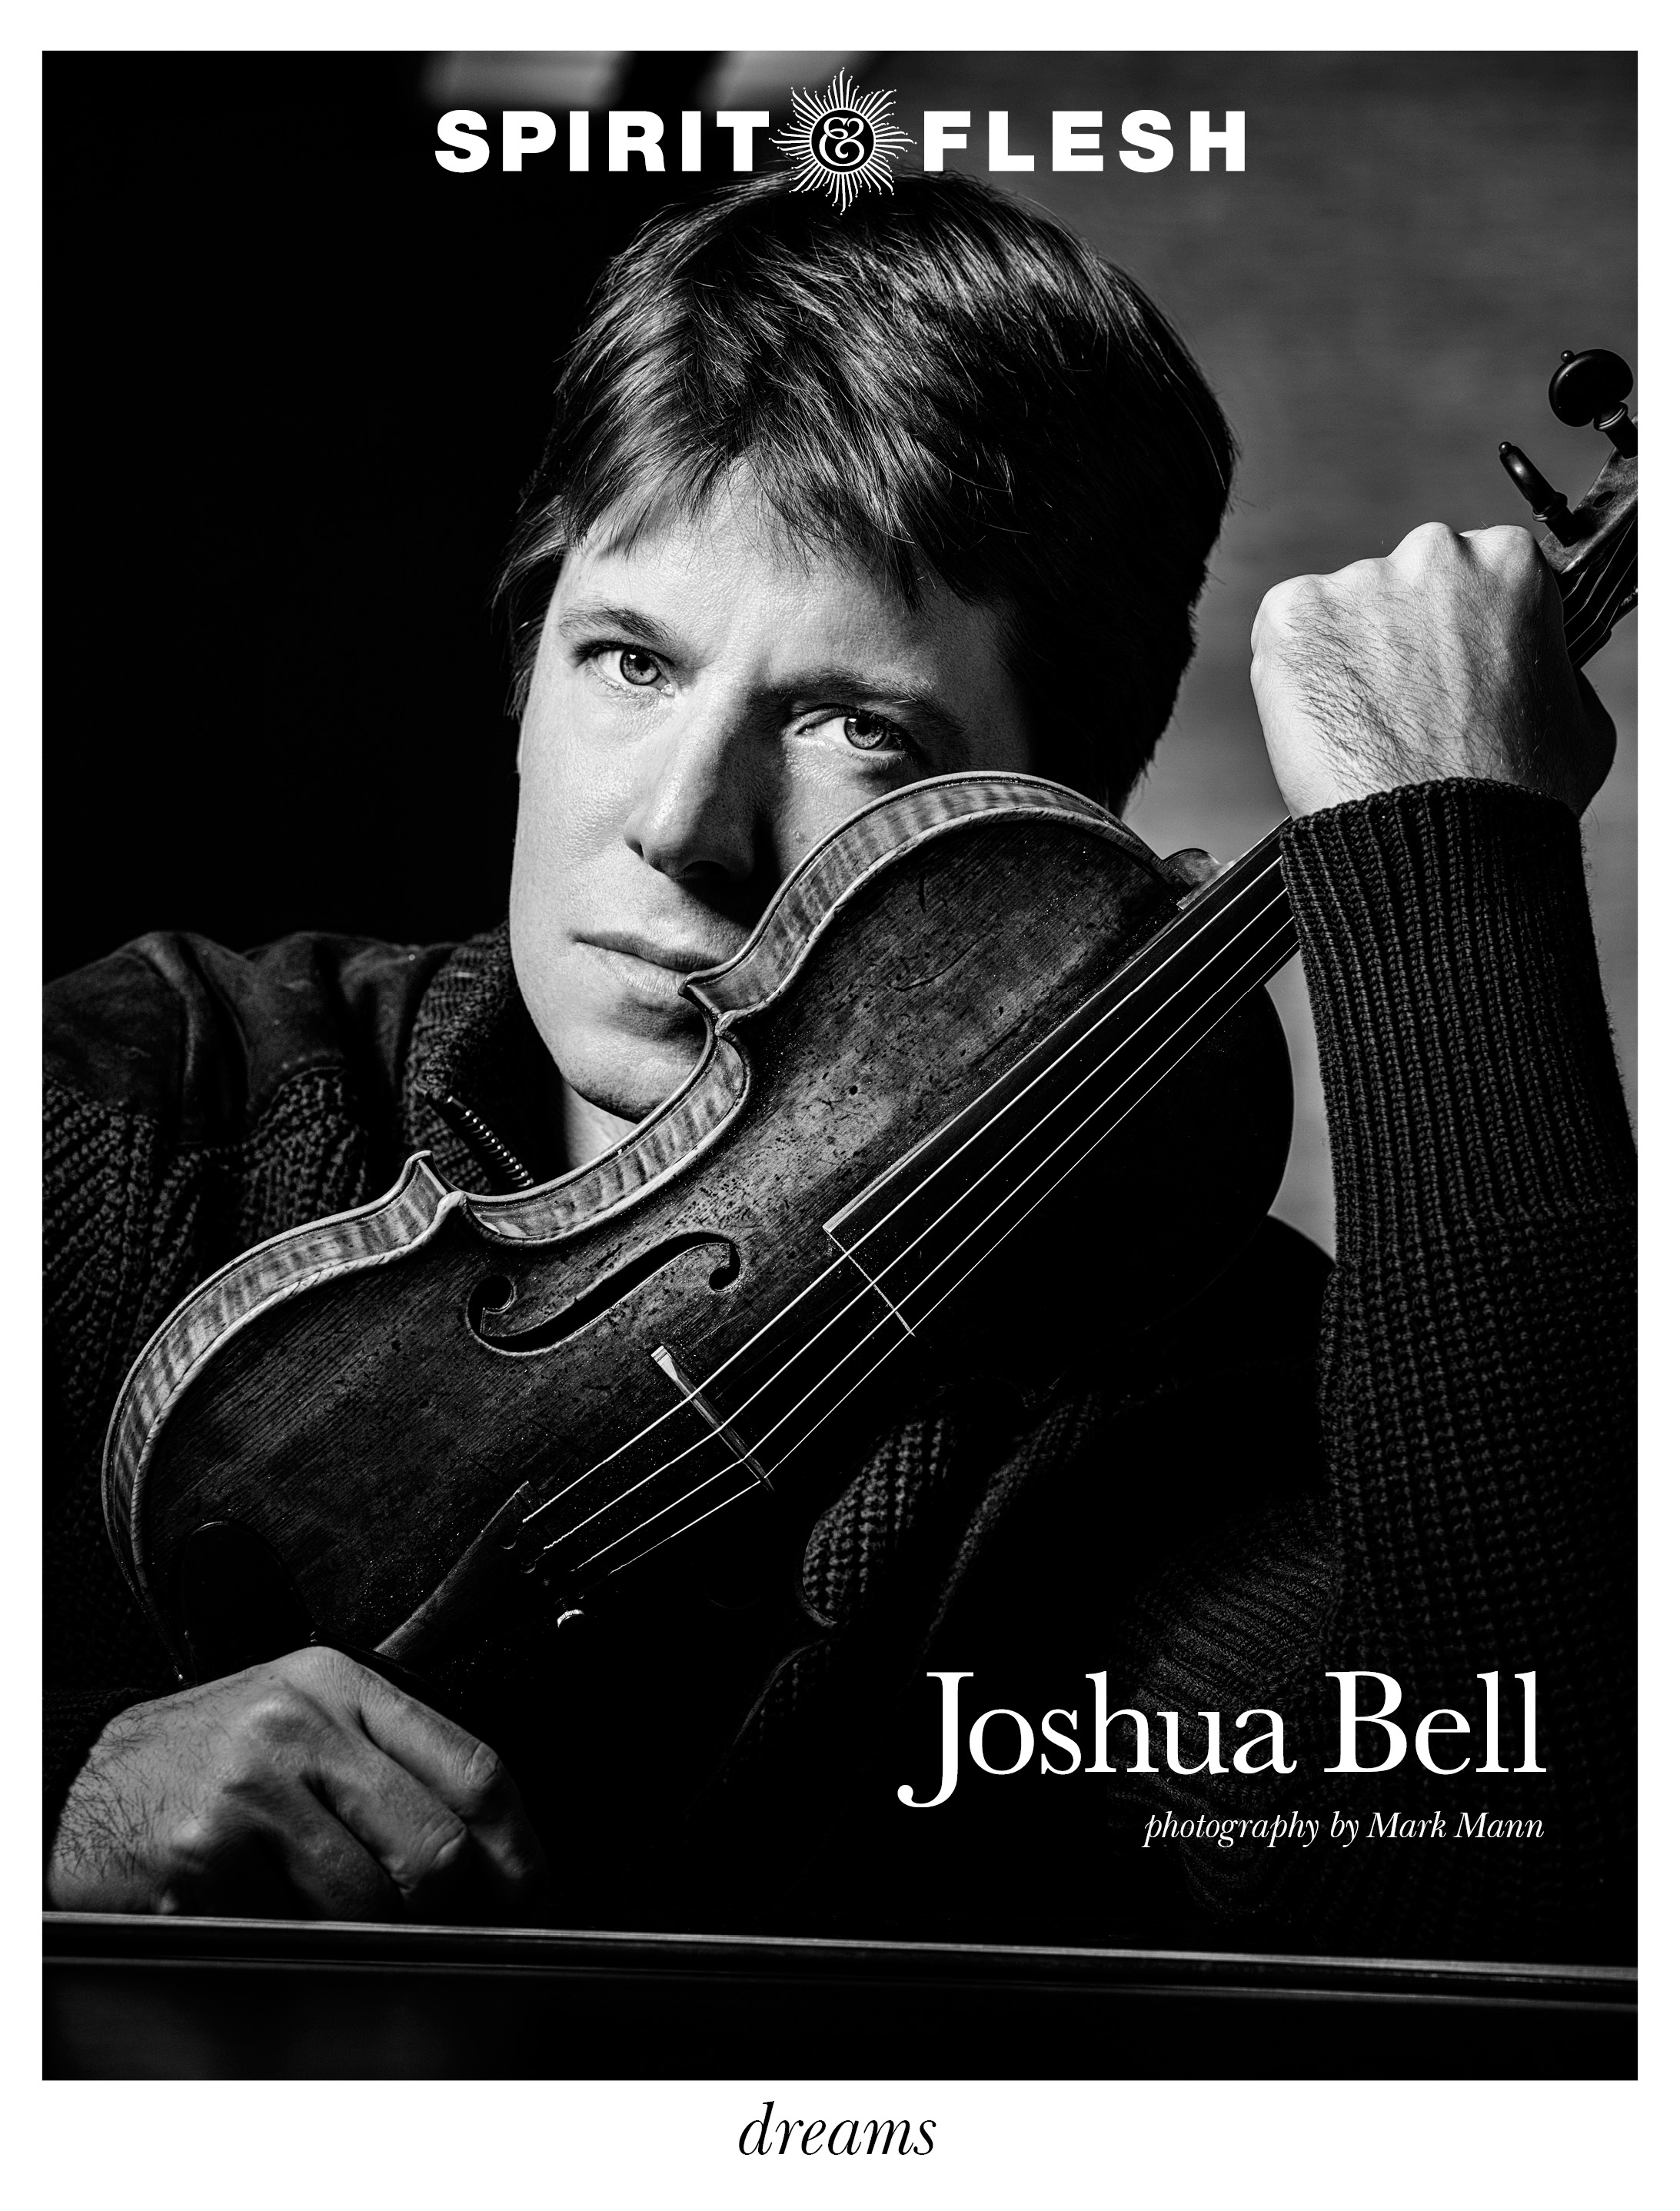 4-Spirit-&-Flesh-Magazine_Dreams-issue-Cover_JOSHUA BELL by Mark Mann